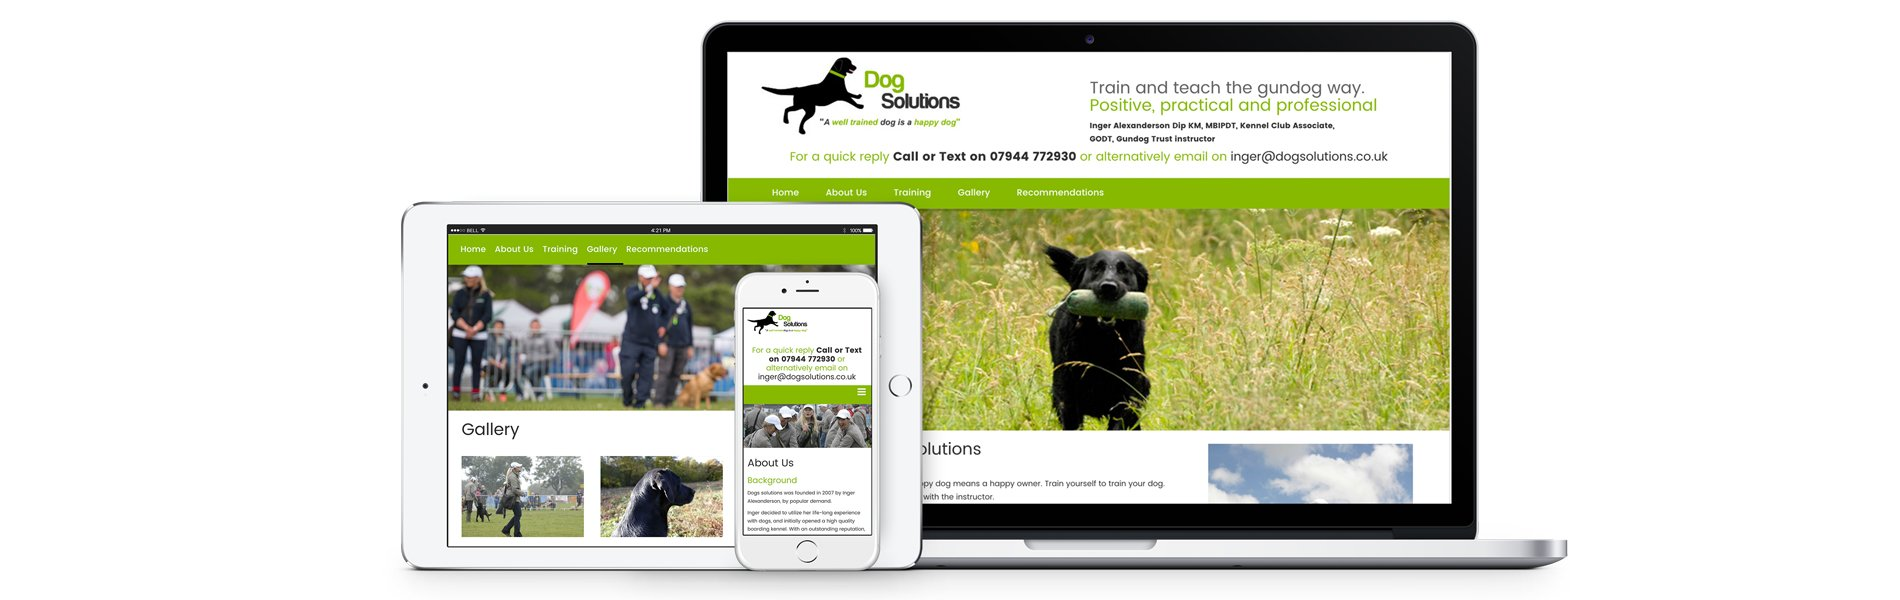 Dog Solutions website